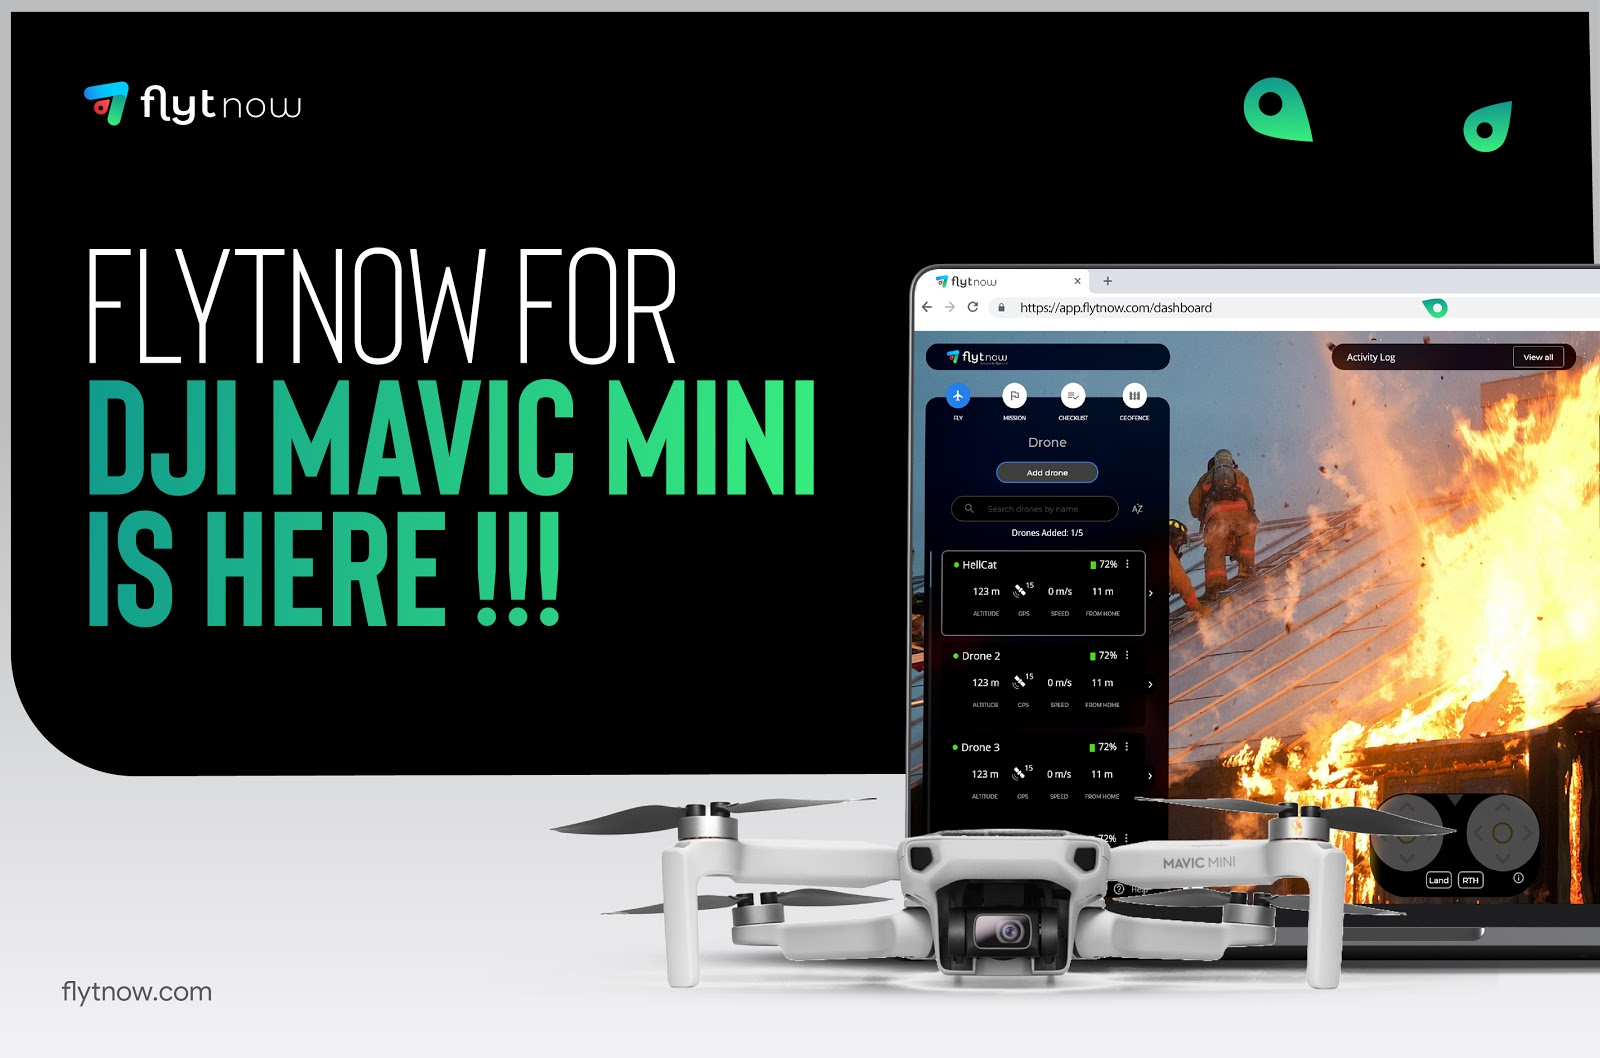 FlytNow Adds Support for DJI MAVIC MINI to Enable First Responder & Aerial Security Operations